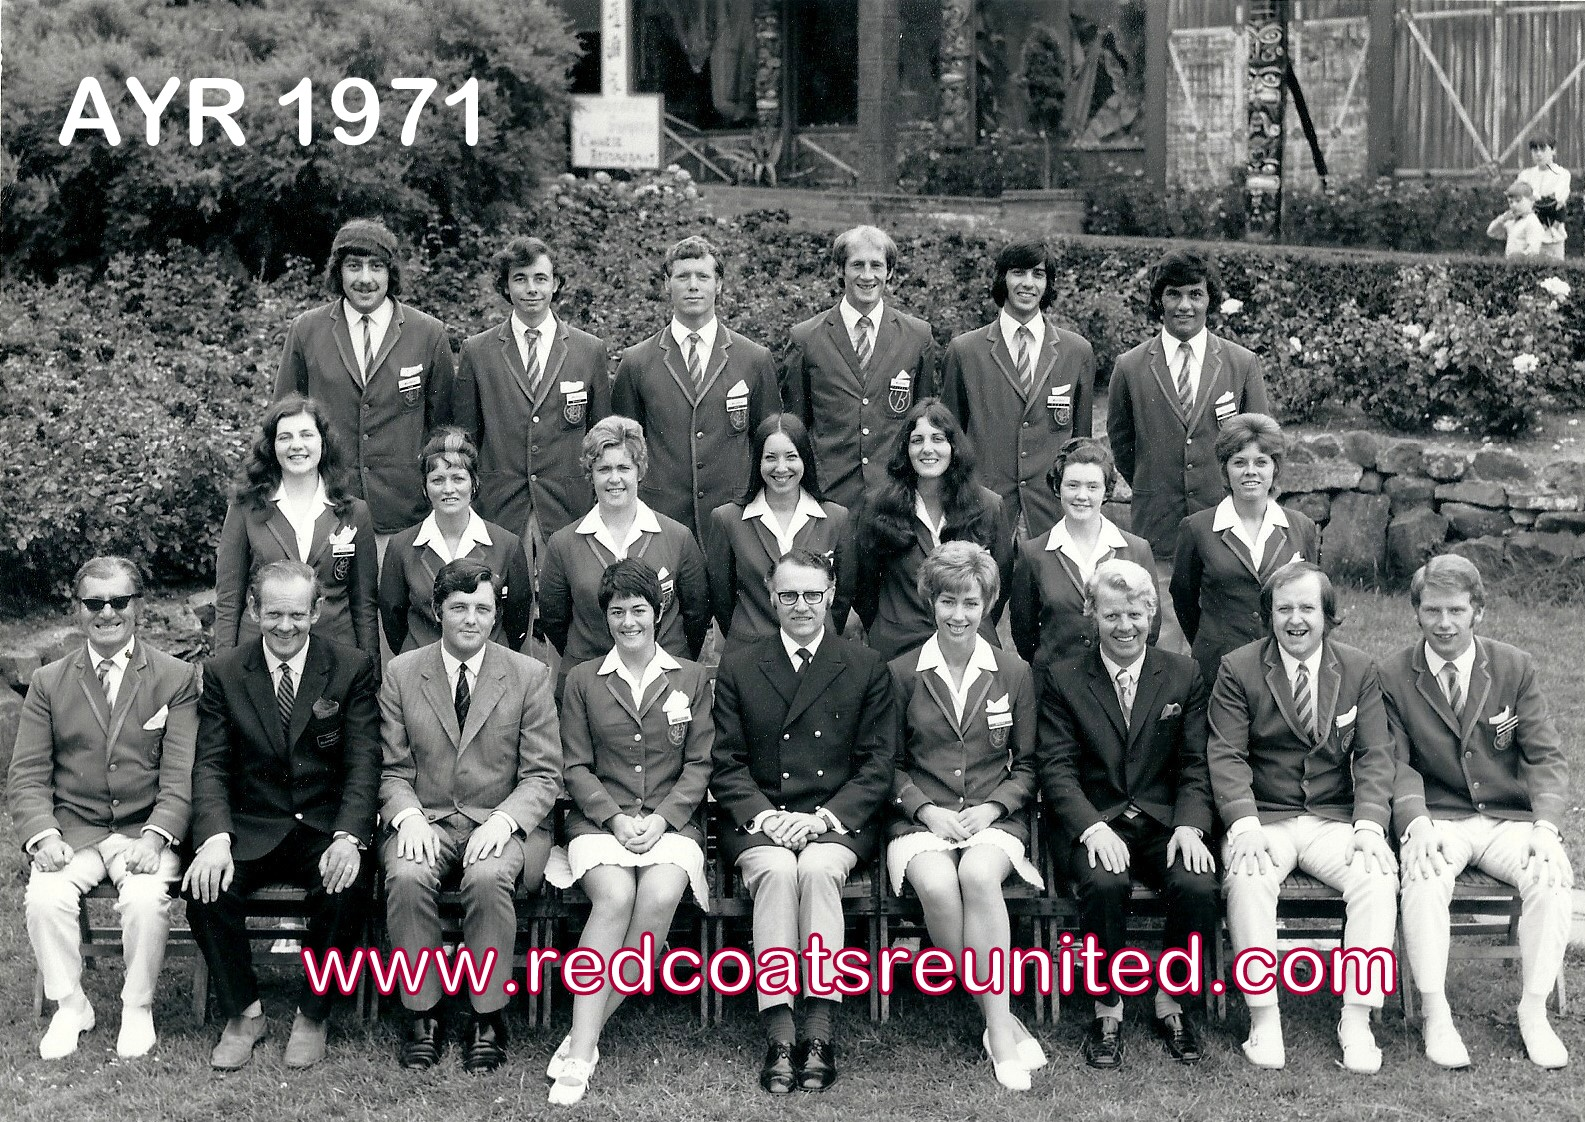 Butlins Ayr 1971 at Redcoats Reunited